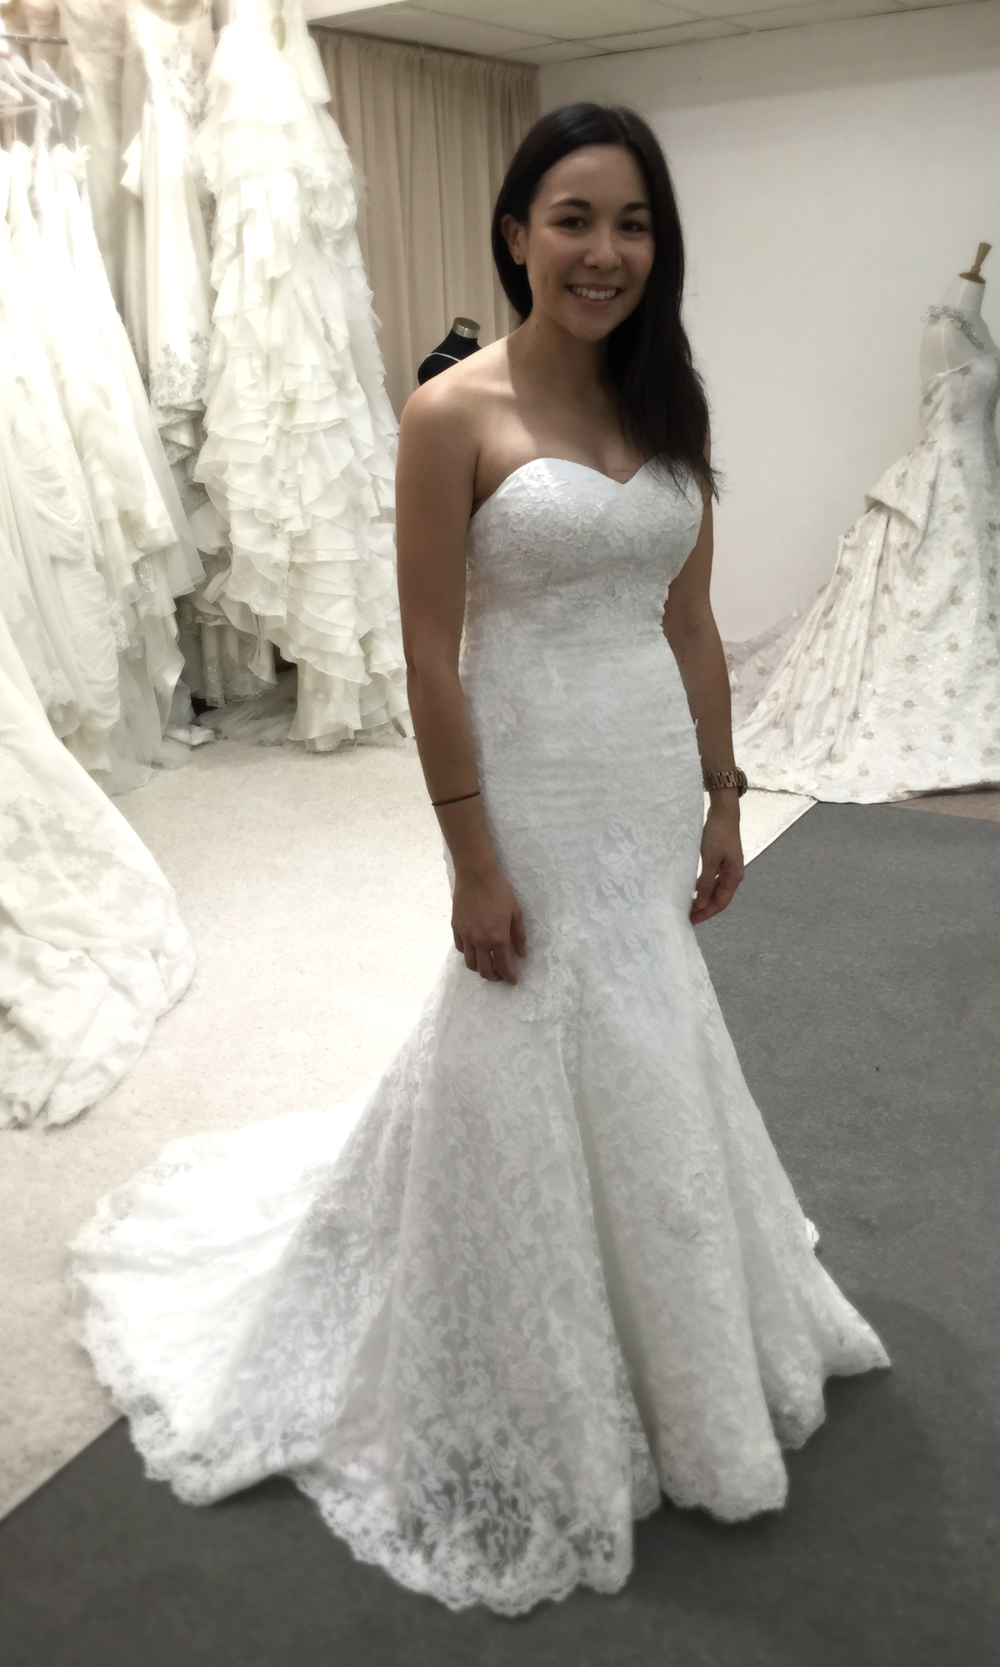 We added extra layer of tulle under the dress for Clare, to create a perfect Mermaid look.